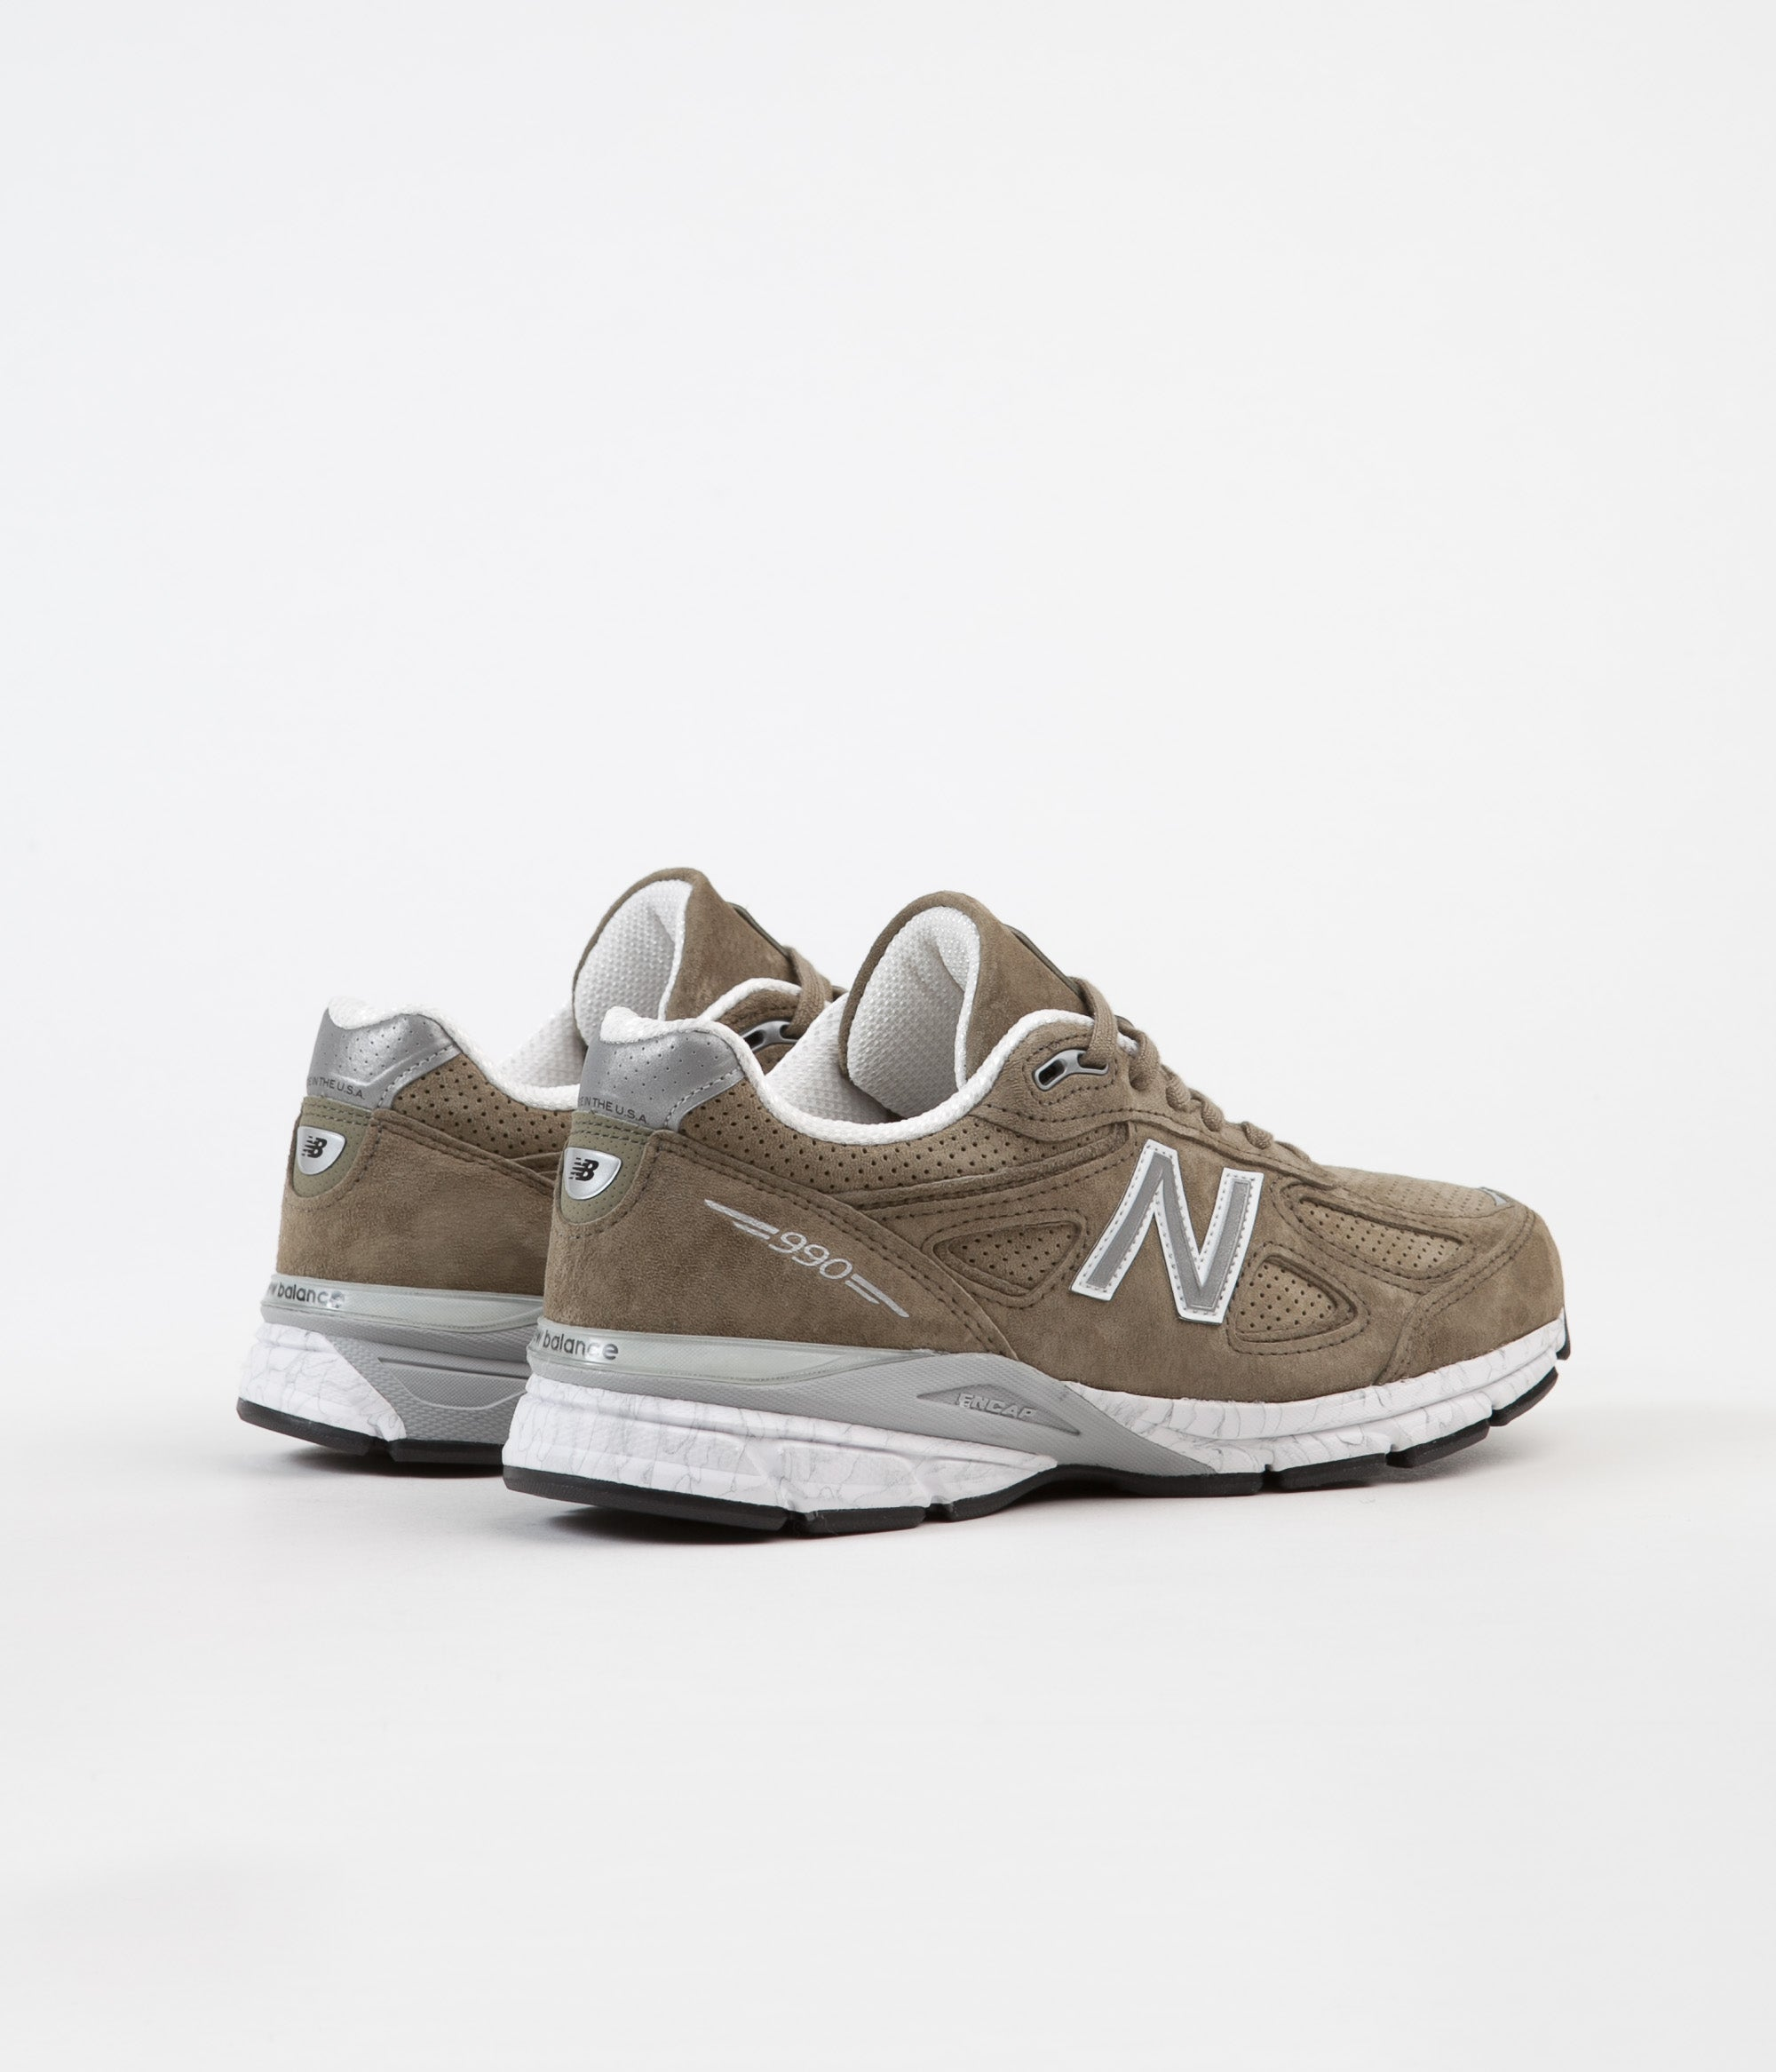 sale retailer 7b47b dd33a New Balance M990V4 Made In US Shoes - Covert Green | Always ...